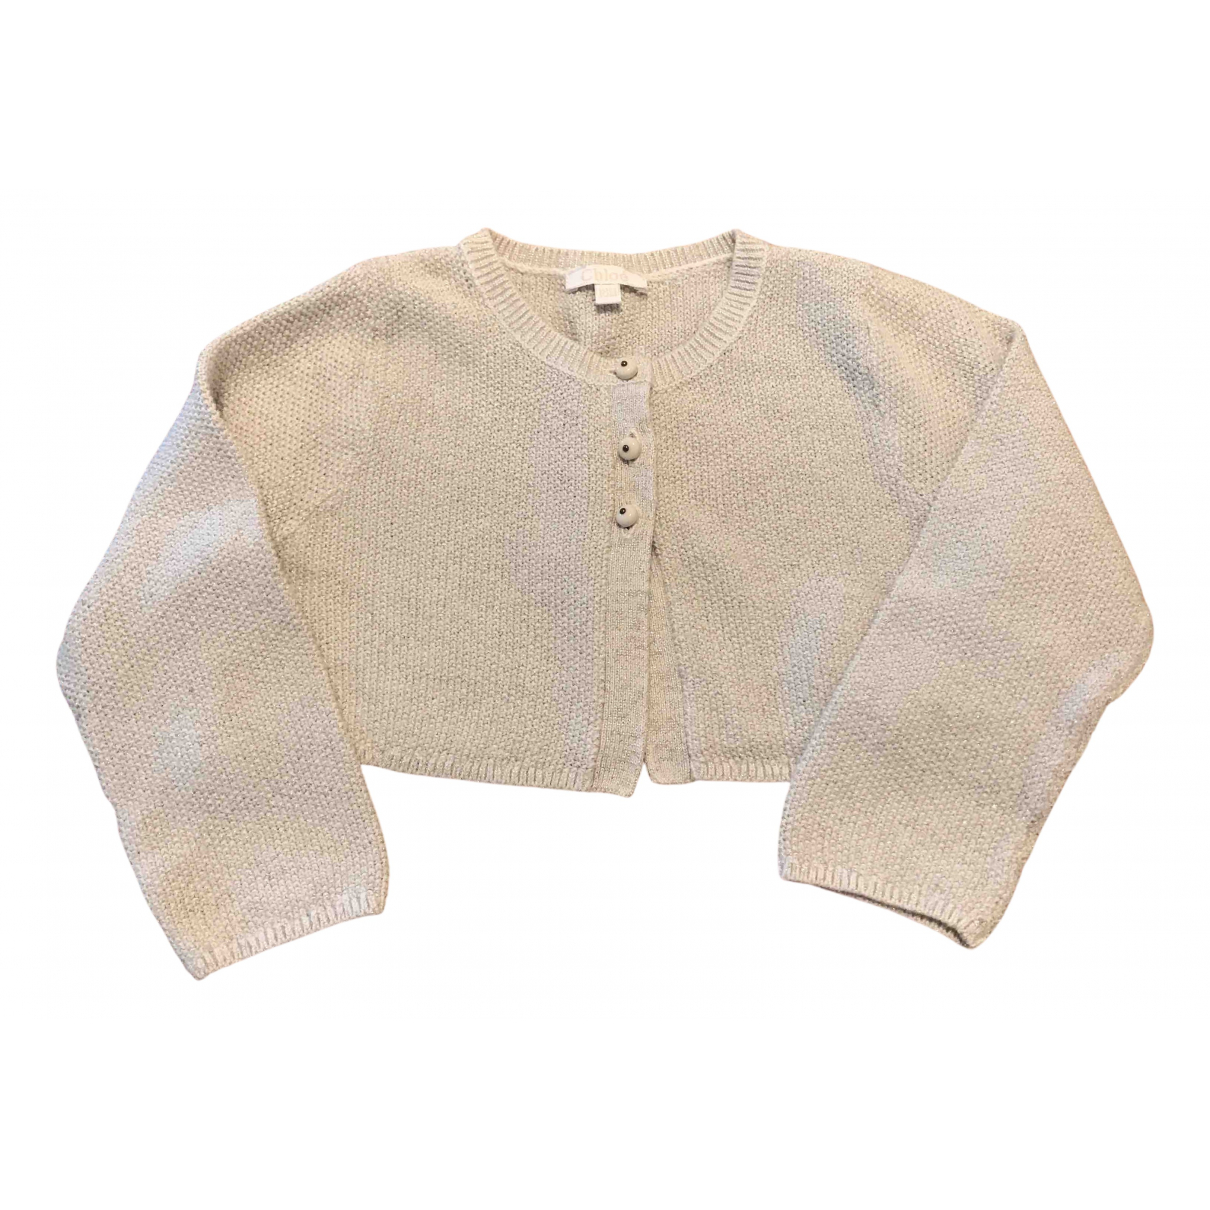 Chloé N Beige Cotton Knitwear for Kids 18 months - up to 81cm FR